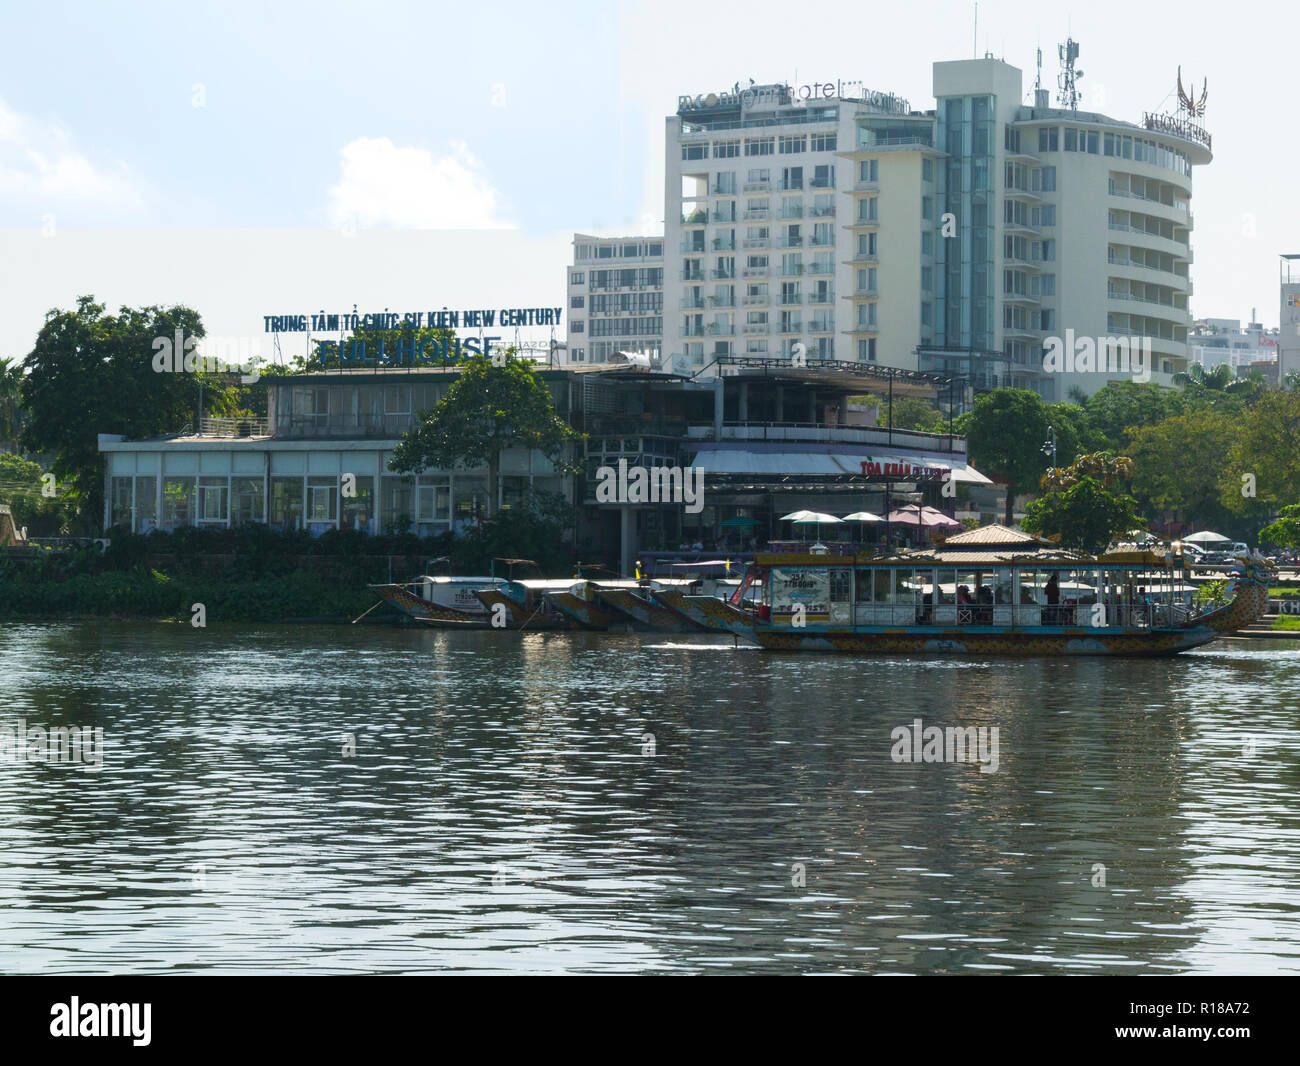 Looking back at Dragon boat pier Toa Kham boat dock from boat on Song Huong Perfume River Hue City former Royal Capital Vietnam Asia UNESCO World Heri - Stock Image